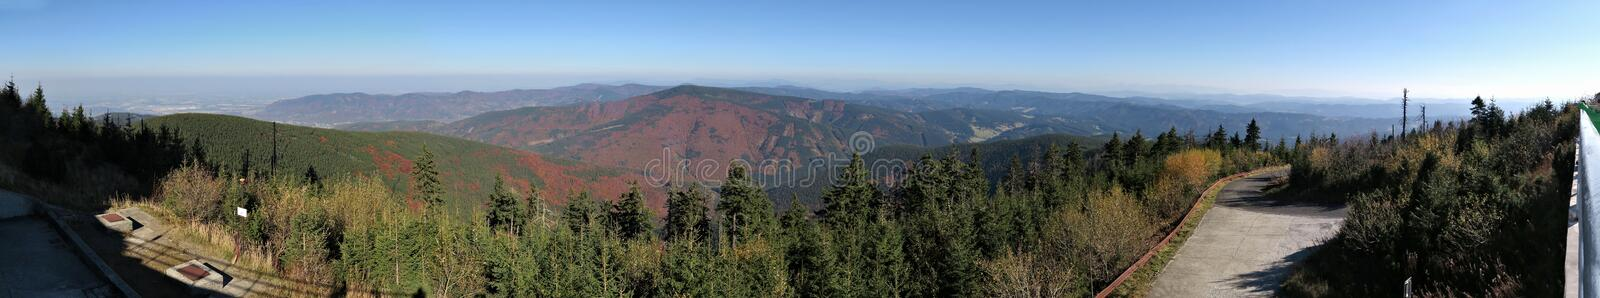 North panorama view from the slopes of Lysa hora mountain in Beskydy mountains royalty free stock image